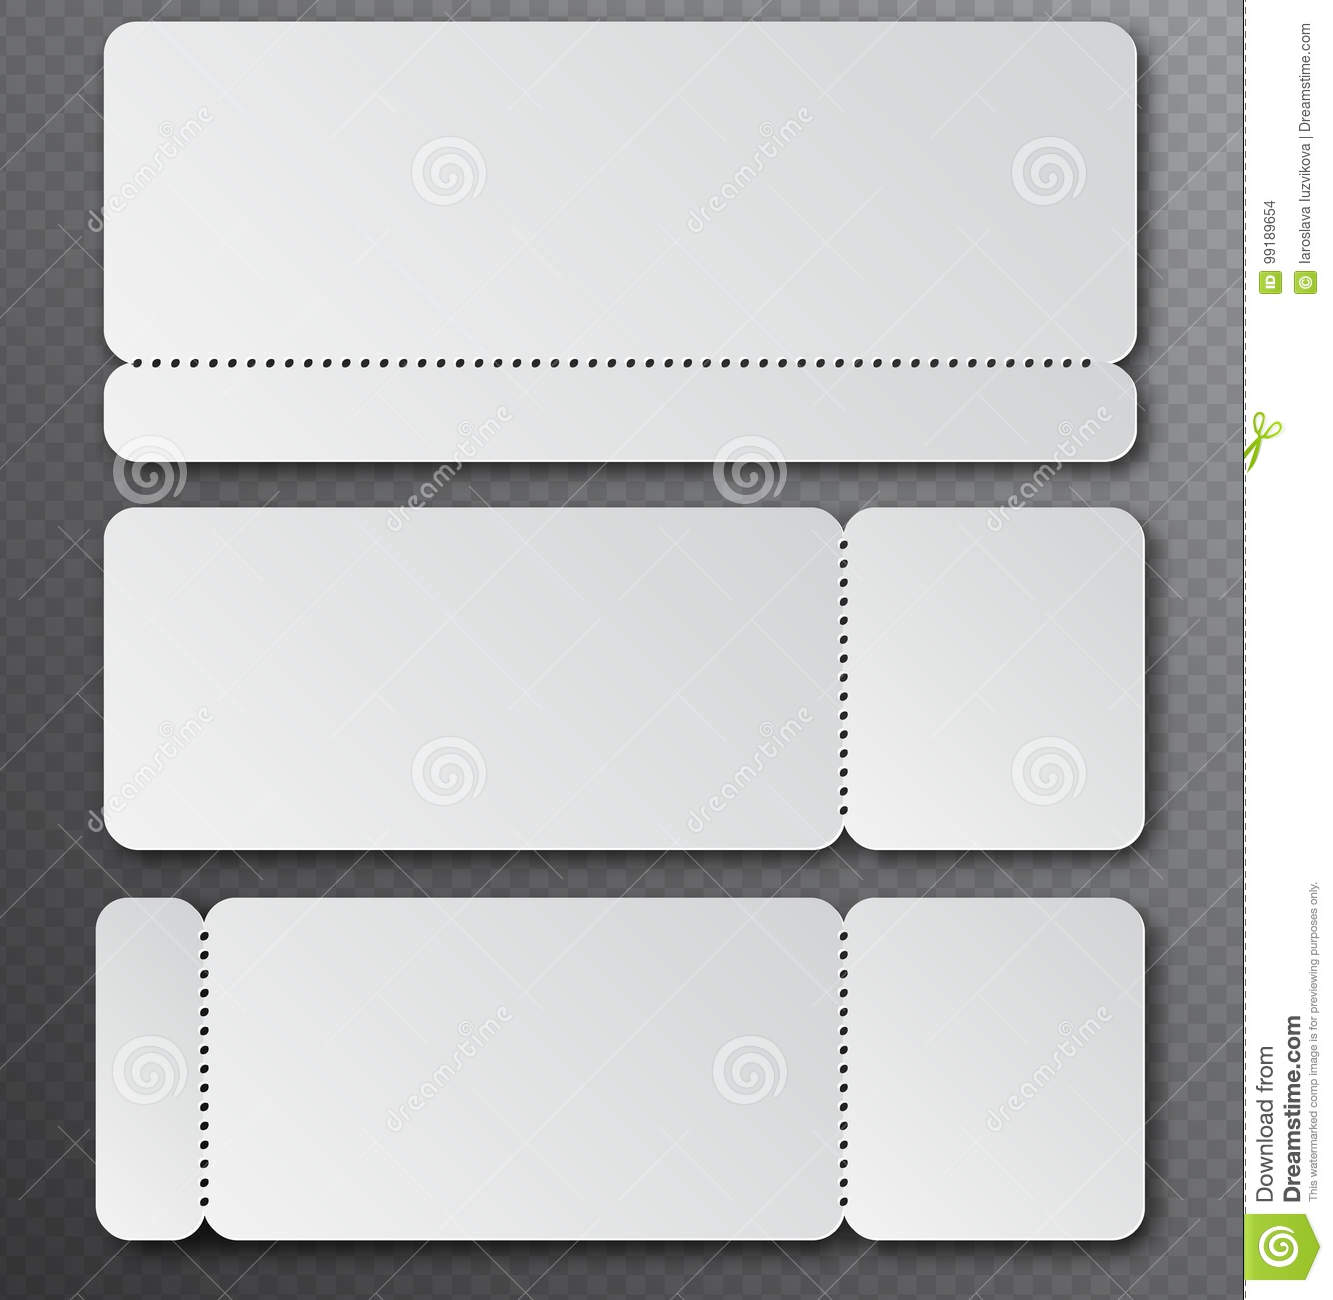 Dance Recital Tickets Template from thumbs.dreamstime.com